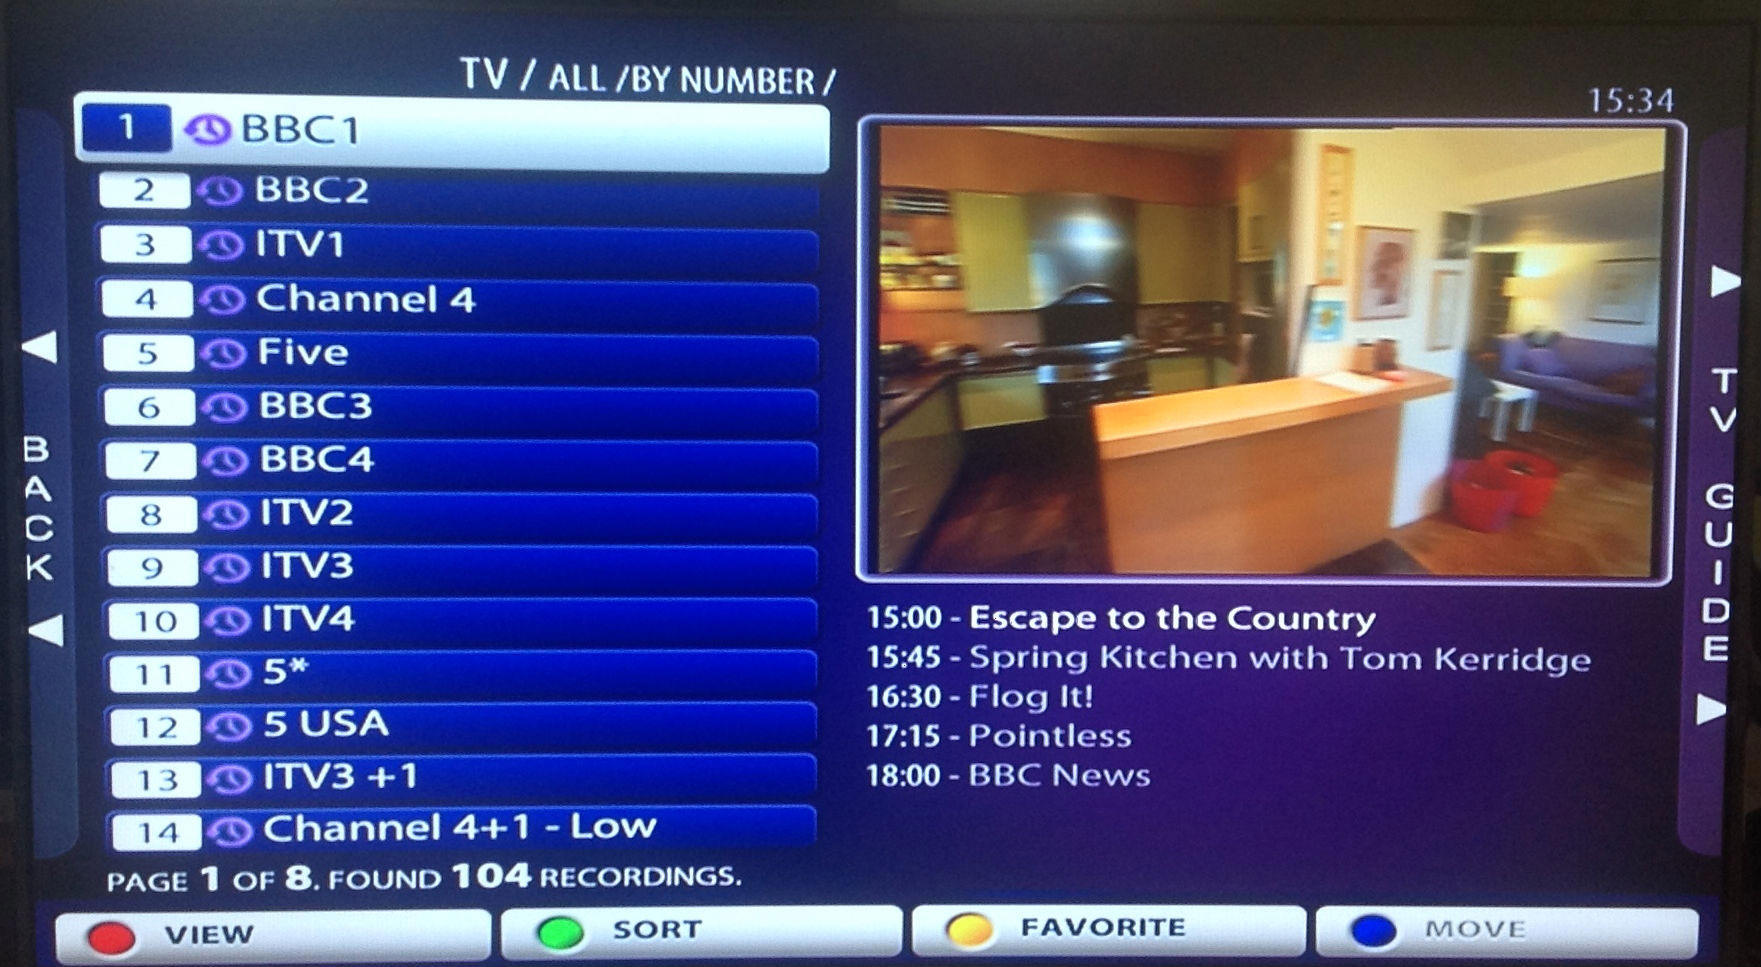 Iptv Network Operators Should Take The Third Mode Of